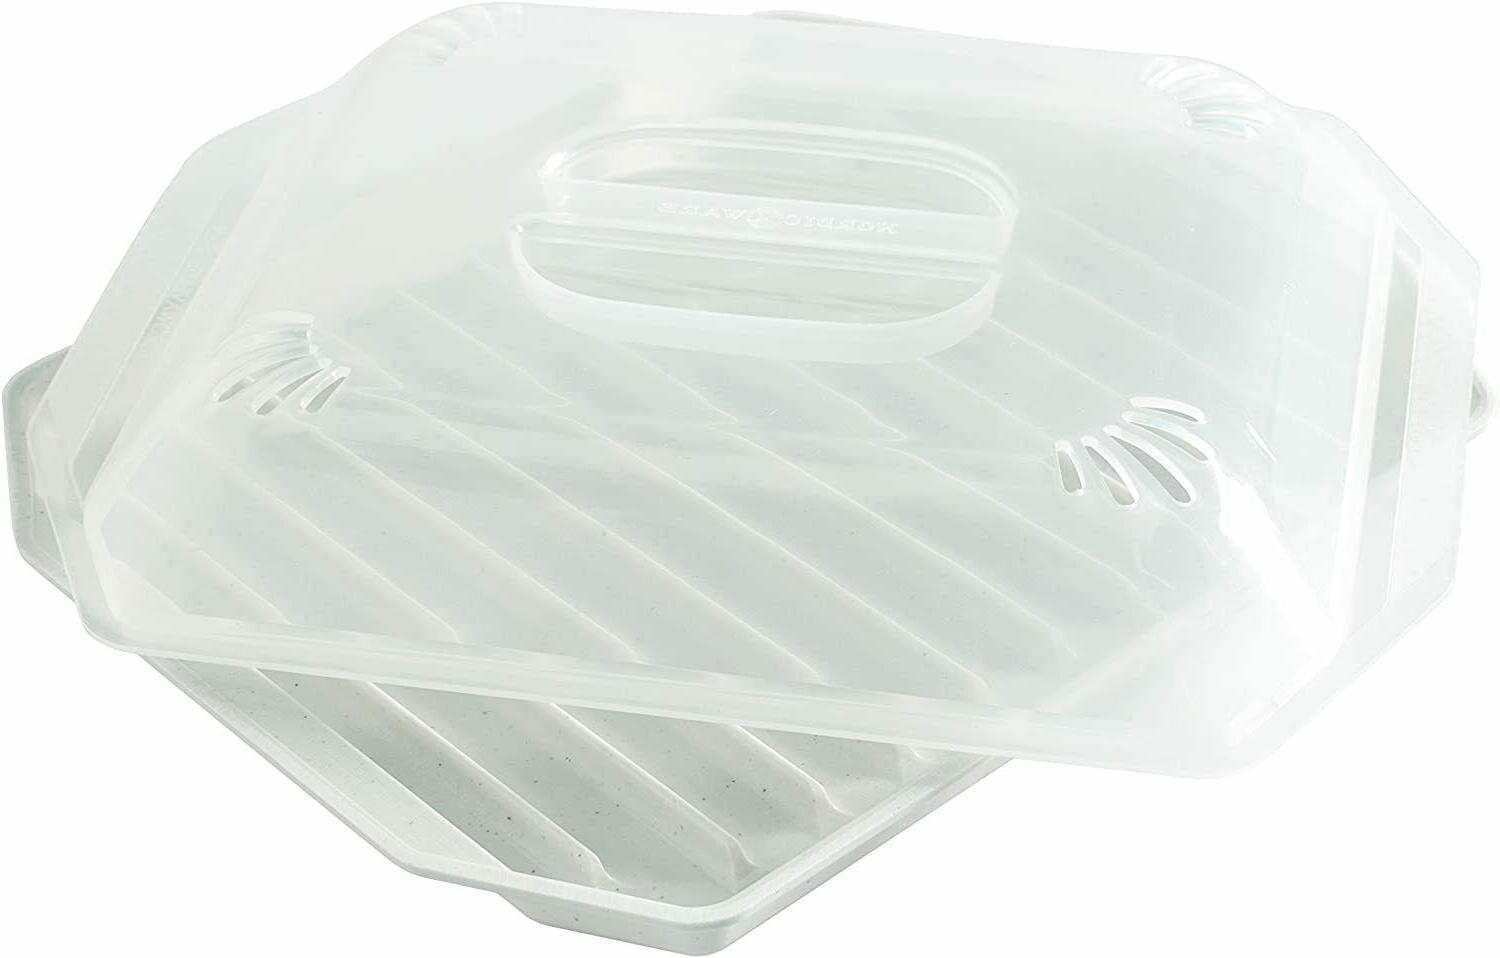 Microwave Lid Sausage Grill Cookware